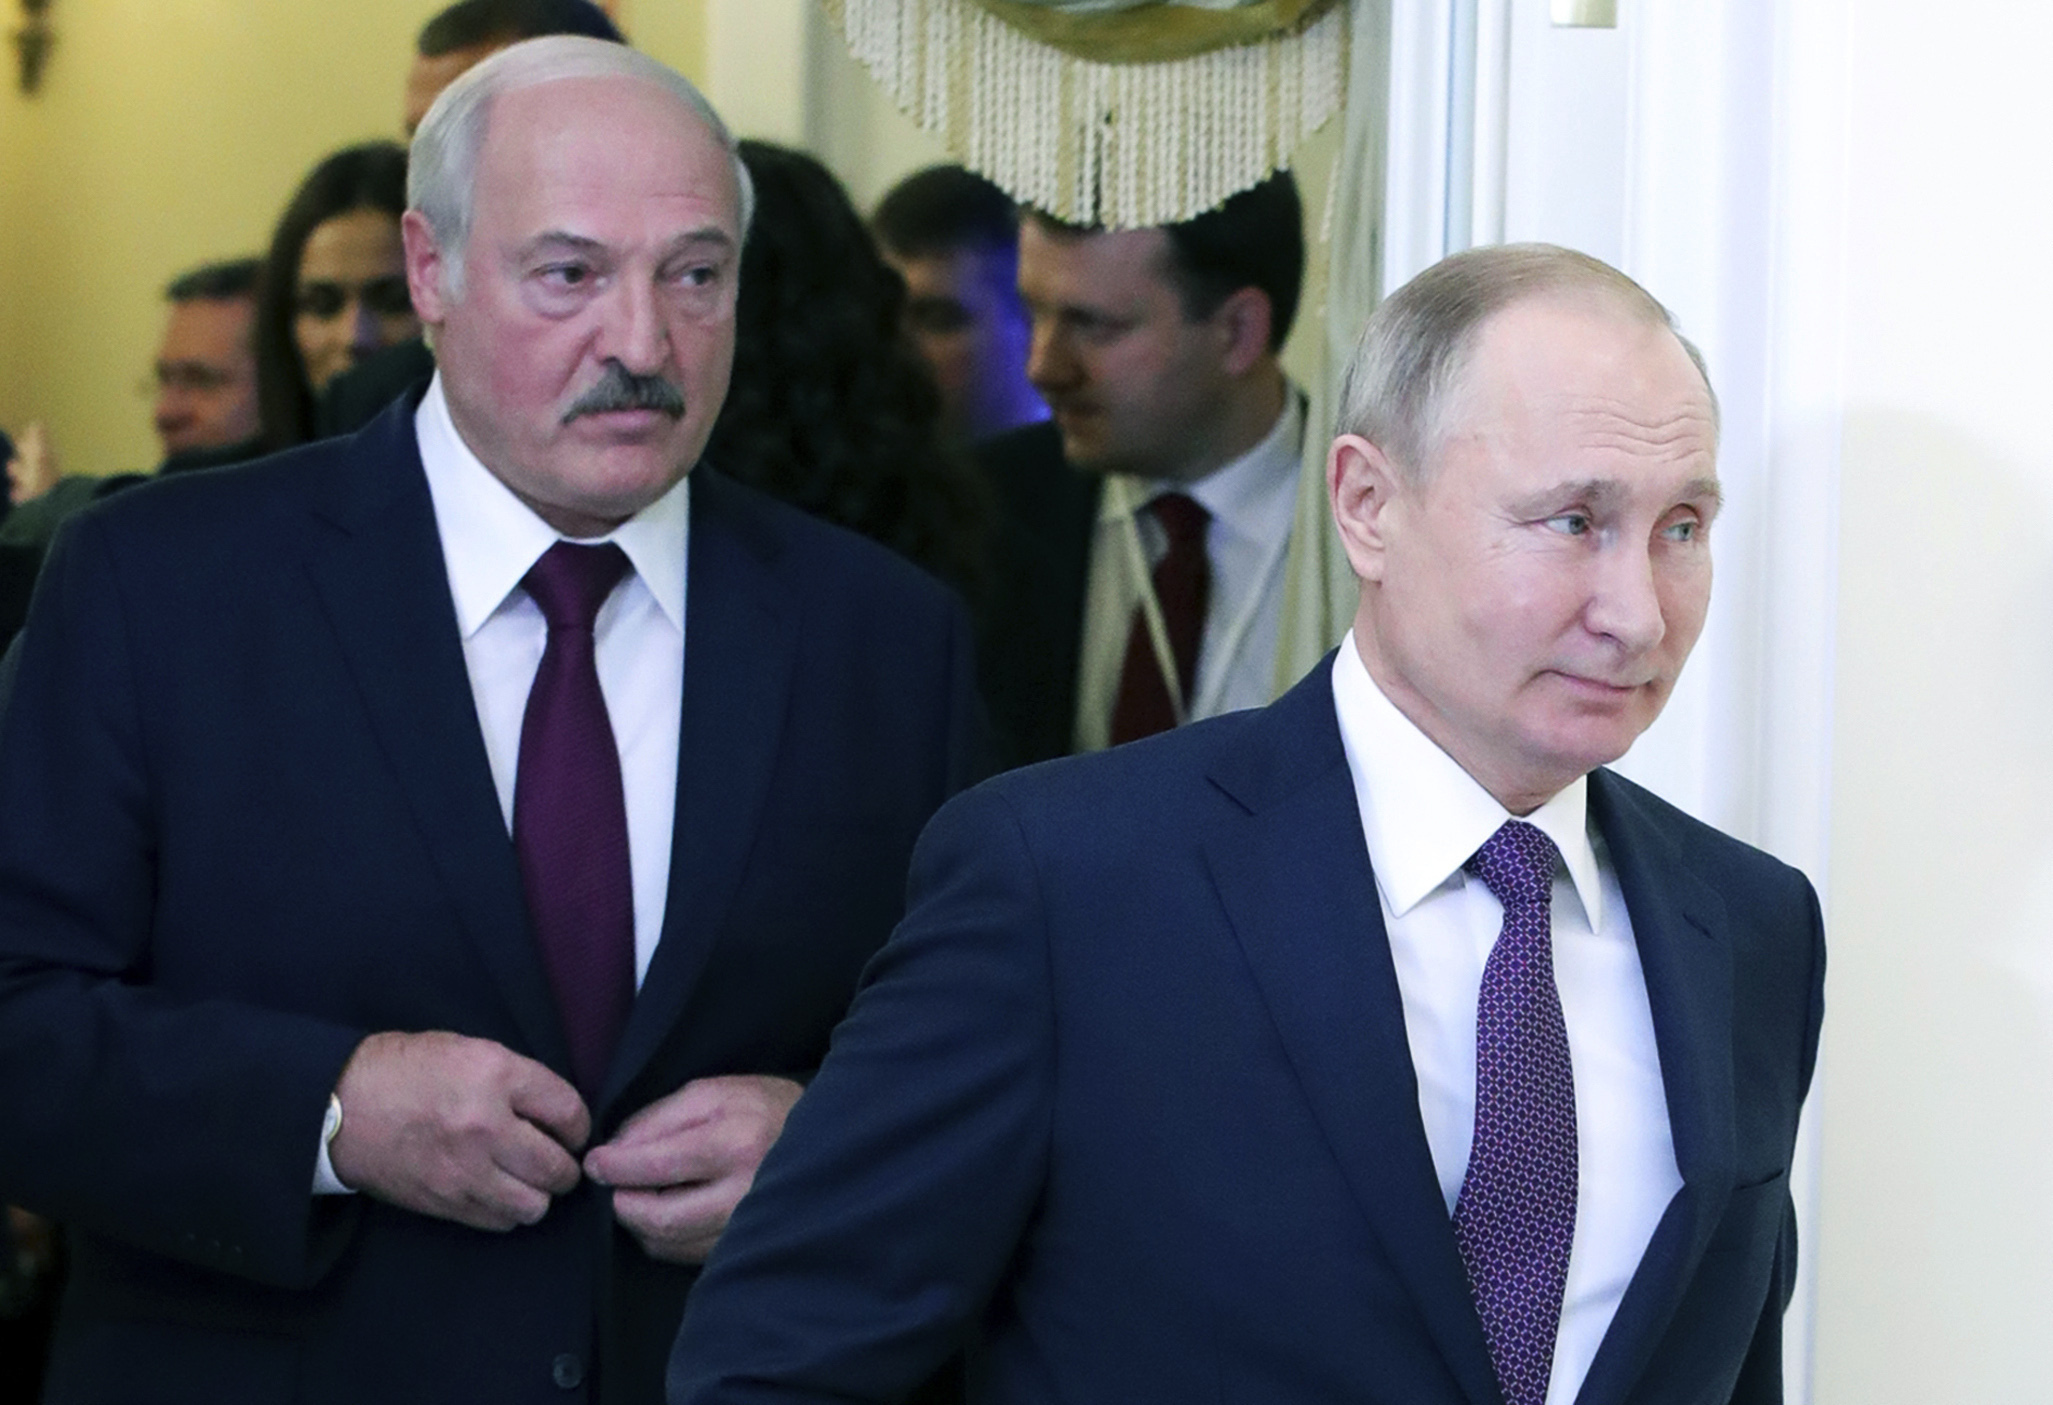 Russian President Vladimir Putin, right, and Belarusian President Alexander Lukashenko walk before a meeting of the Supreme Eurasian Economic Council in St. Petersburg, Russia, on Dec. 20, 2019.